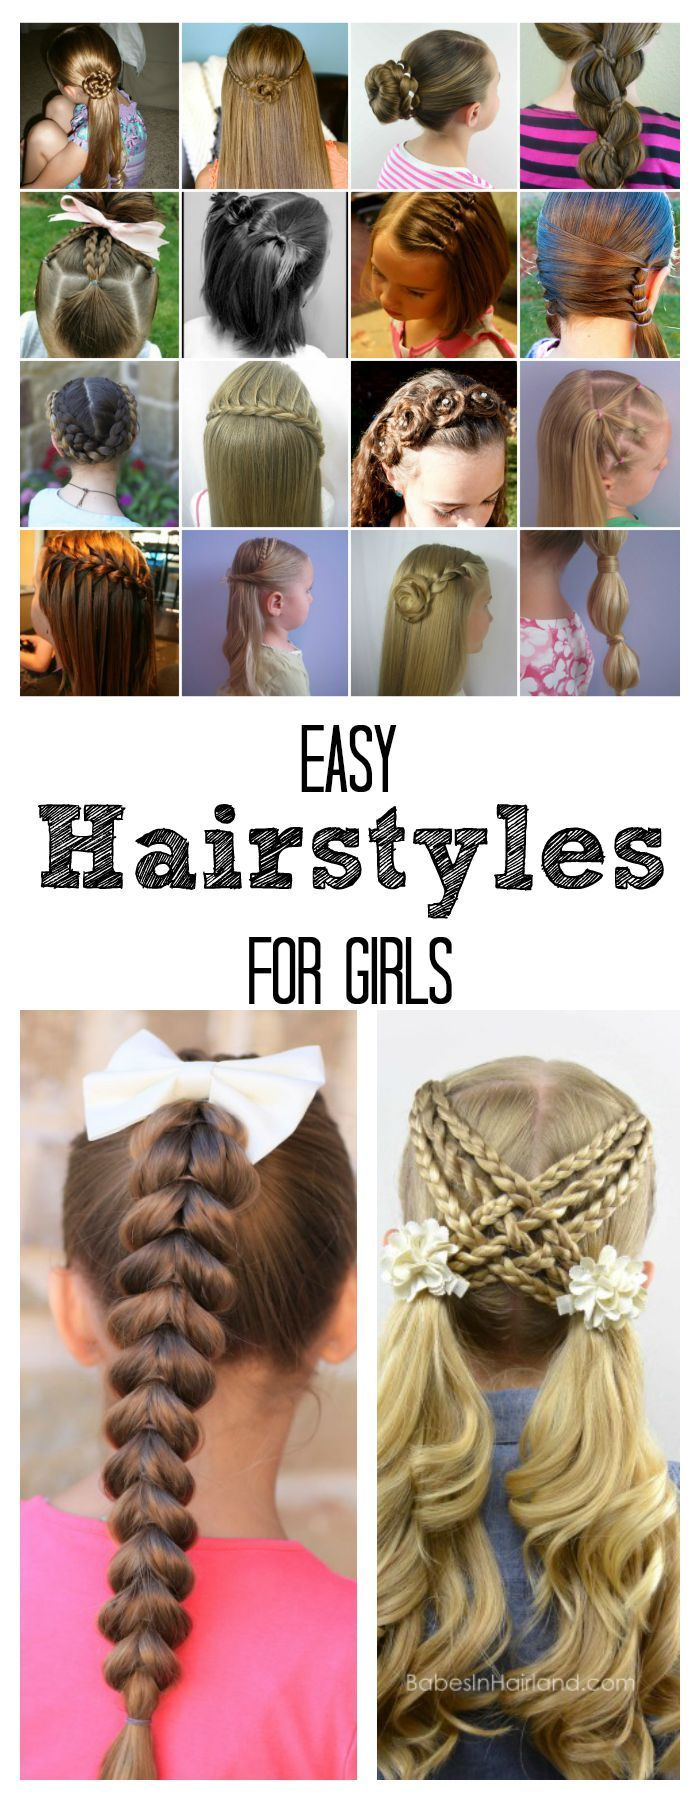 Easy Hairstyles for Girls in 12  Hair styles, Easy hairstyles